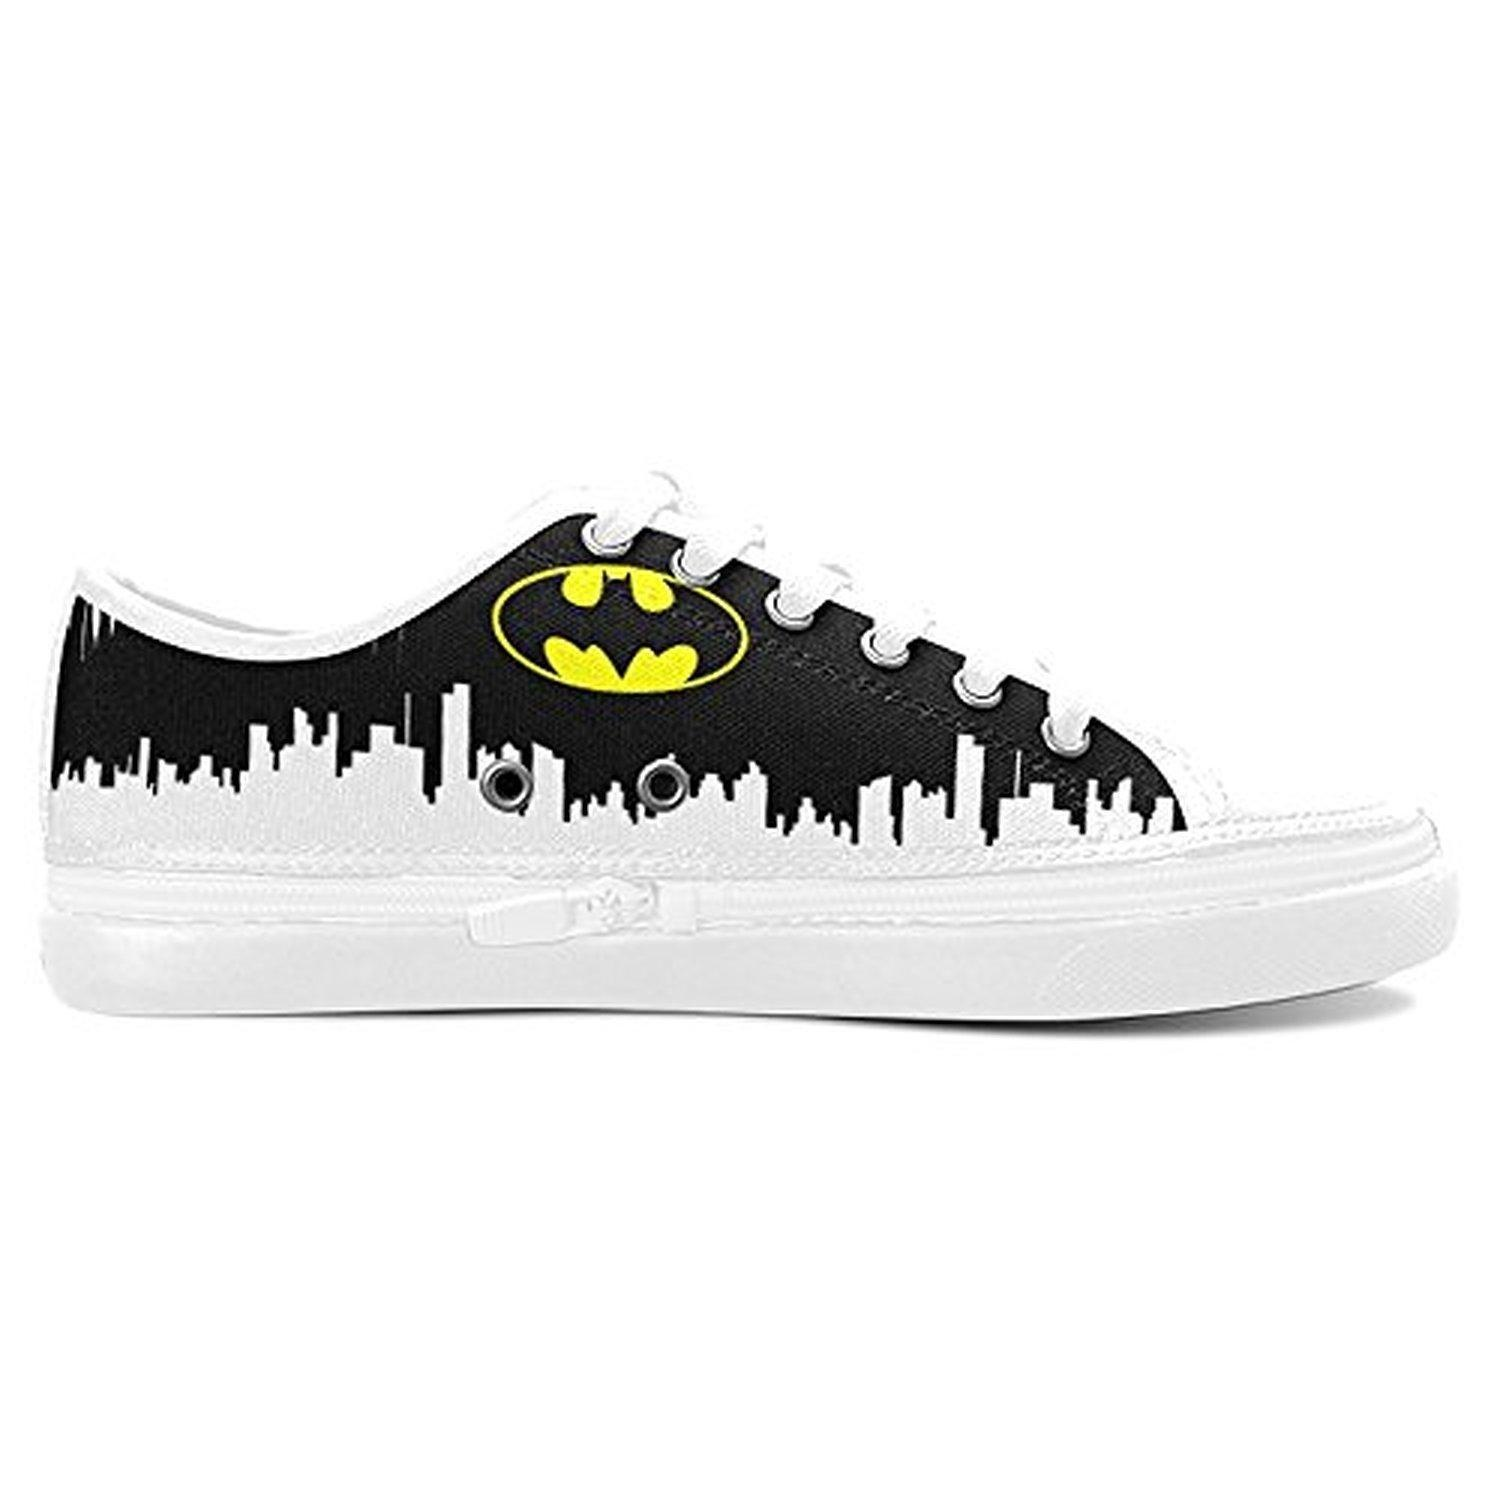 H-ome Art My Chemical Romance Band Custom Women's Nonslip Zippered Black Canvas Shoes Sneakers